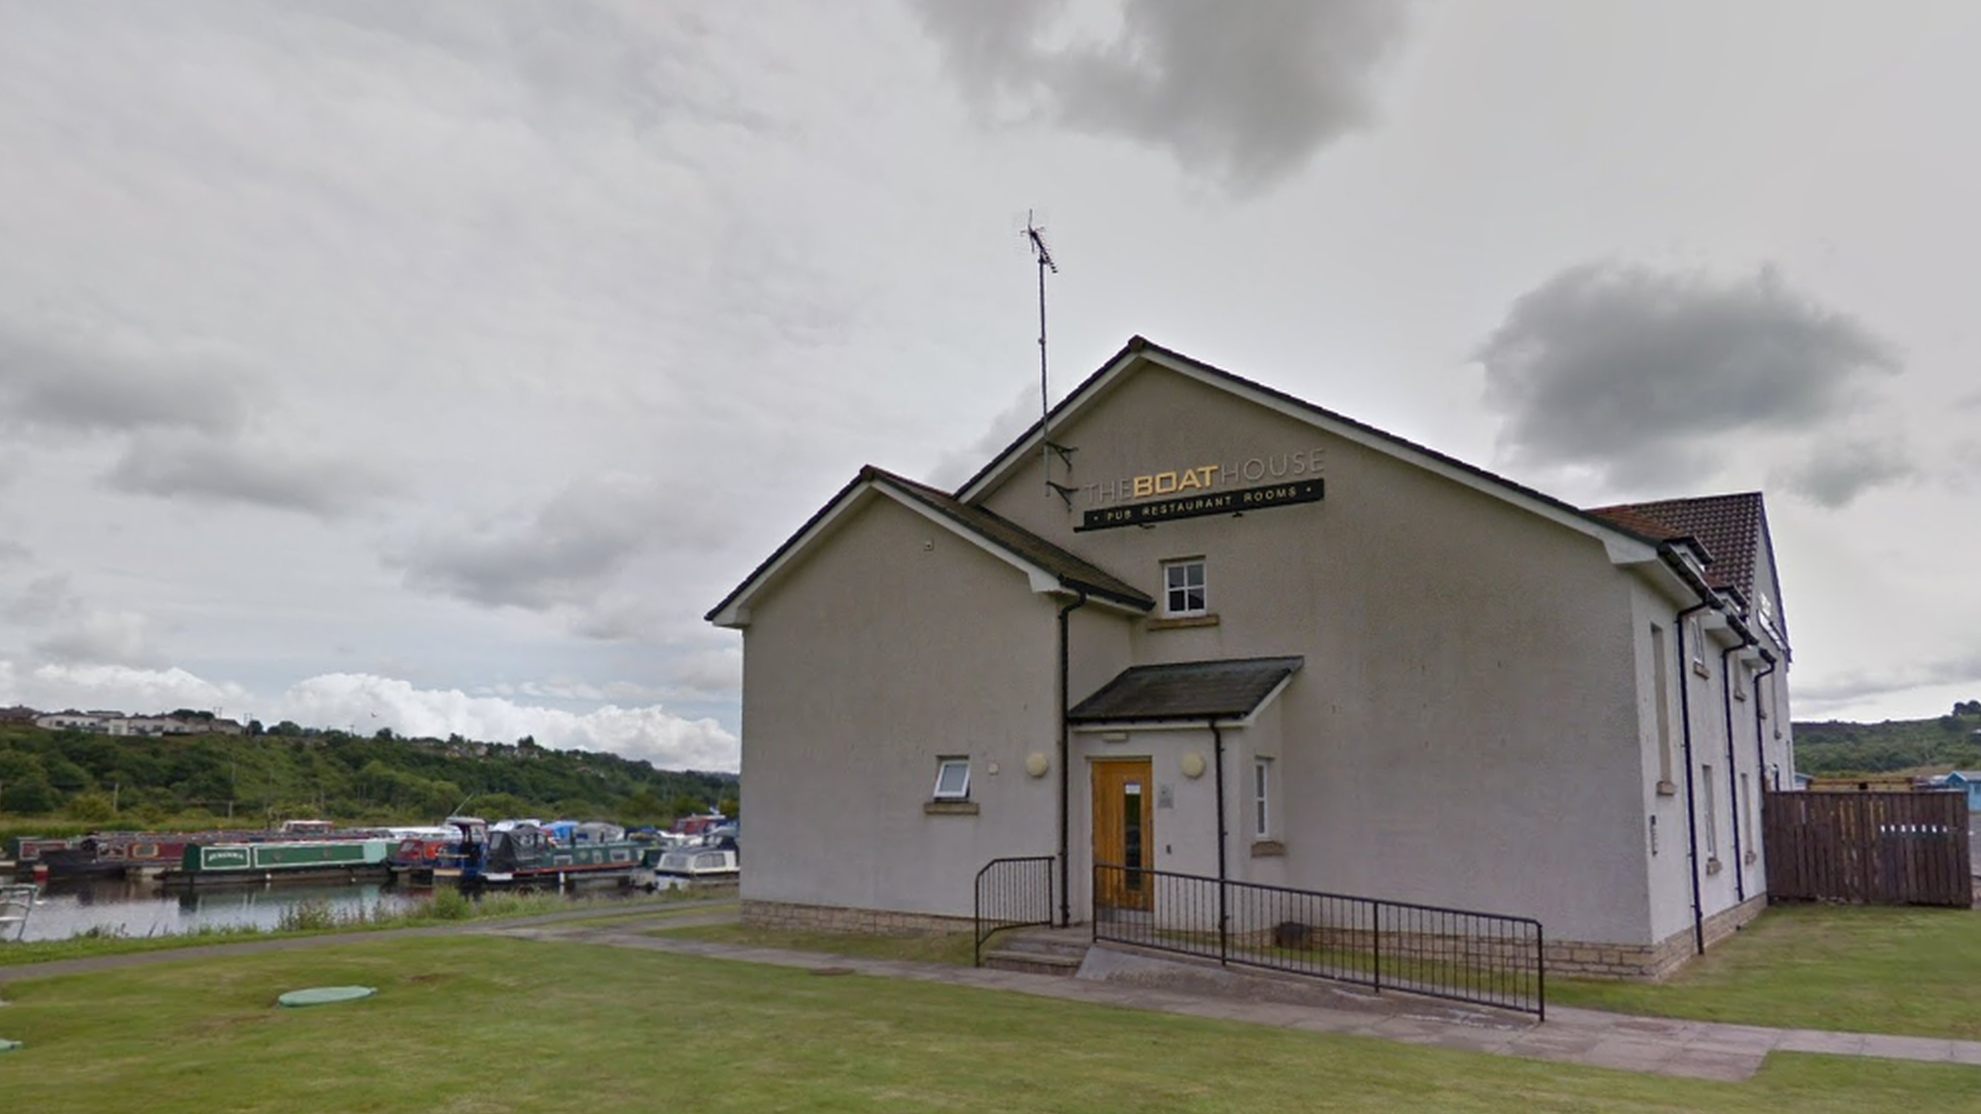 Closure of Kilsyth restaurant 'illustrates problems within sector'